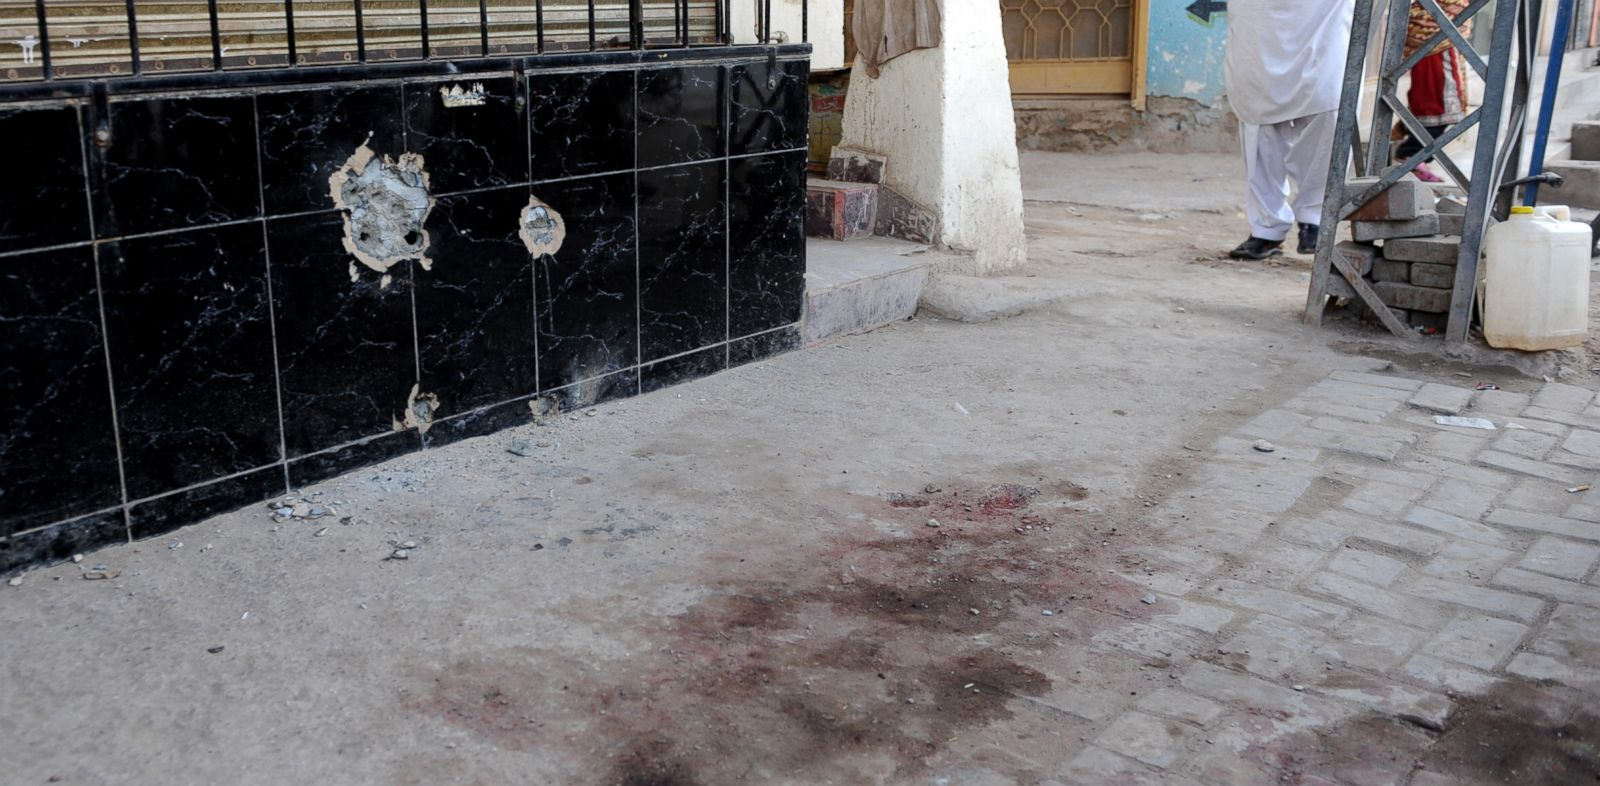 PHOTO: The scene with the bullet holes on the wall where Nasiruddin Haqqani, the eldest son of Jalaluddin Haqqani the chief of the Haqqani network is shot dead in Barakahu town near Islamabad, Nov. 10, 2013.